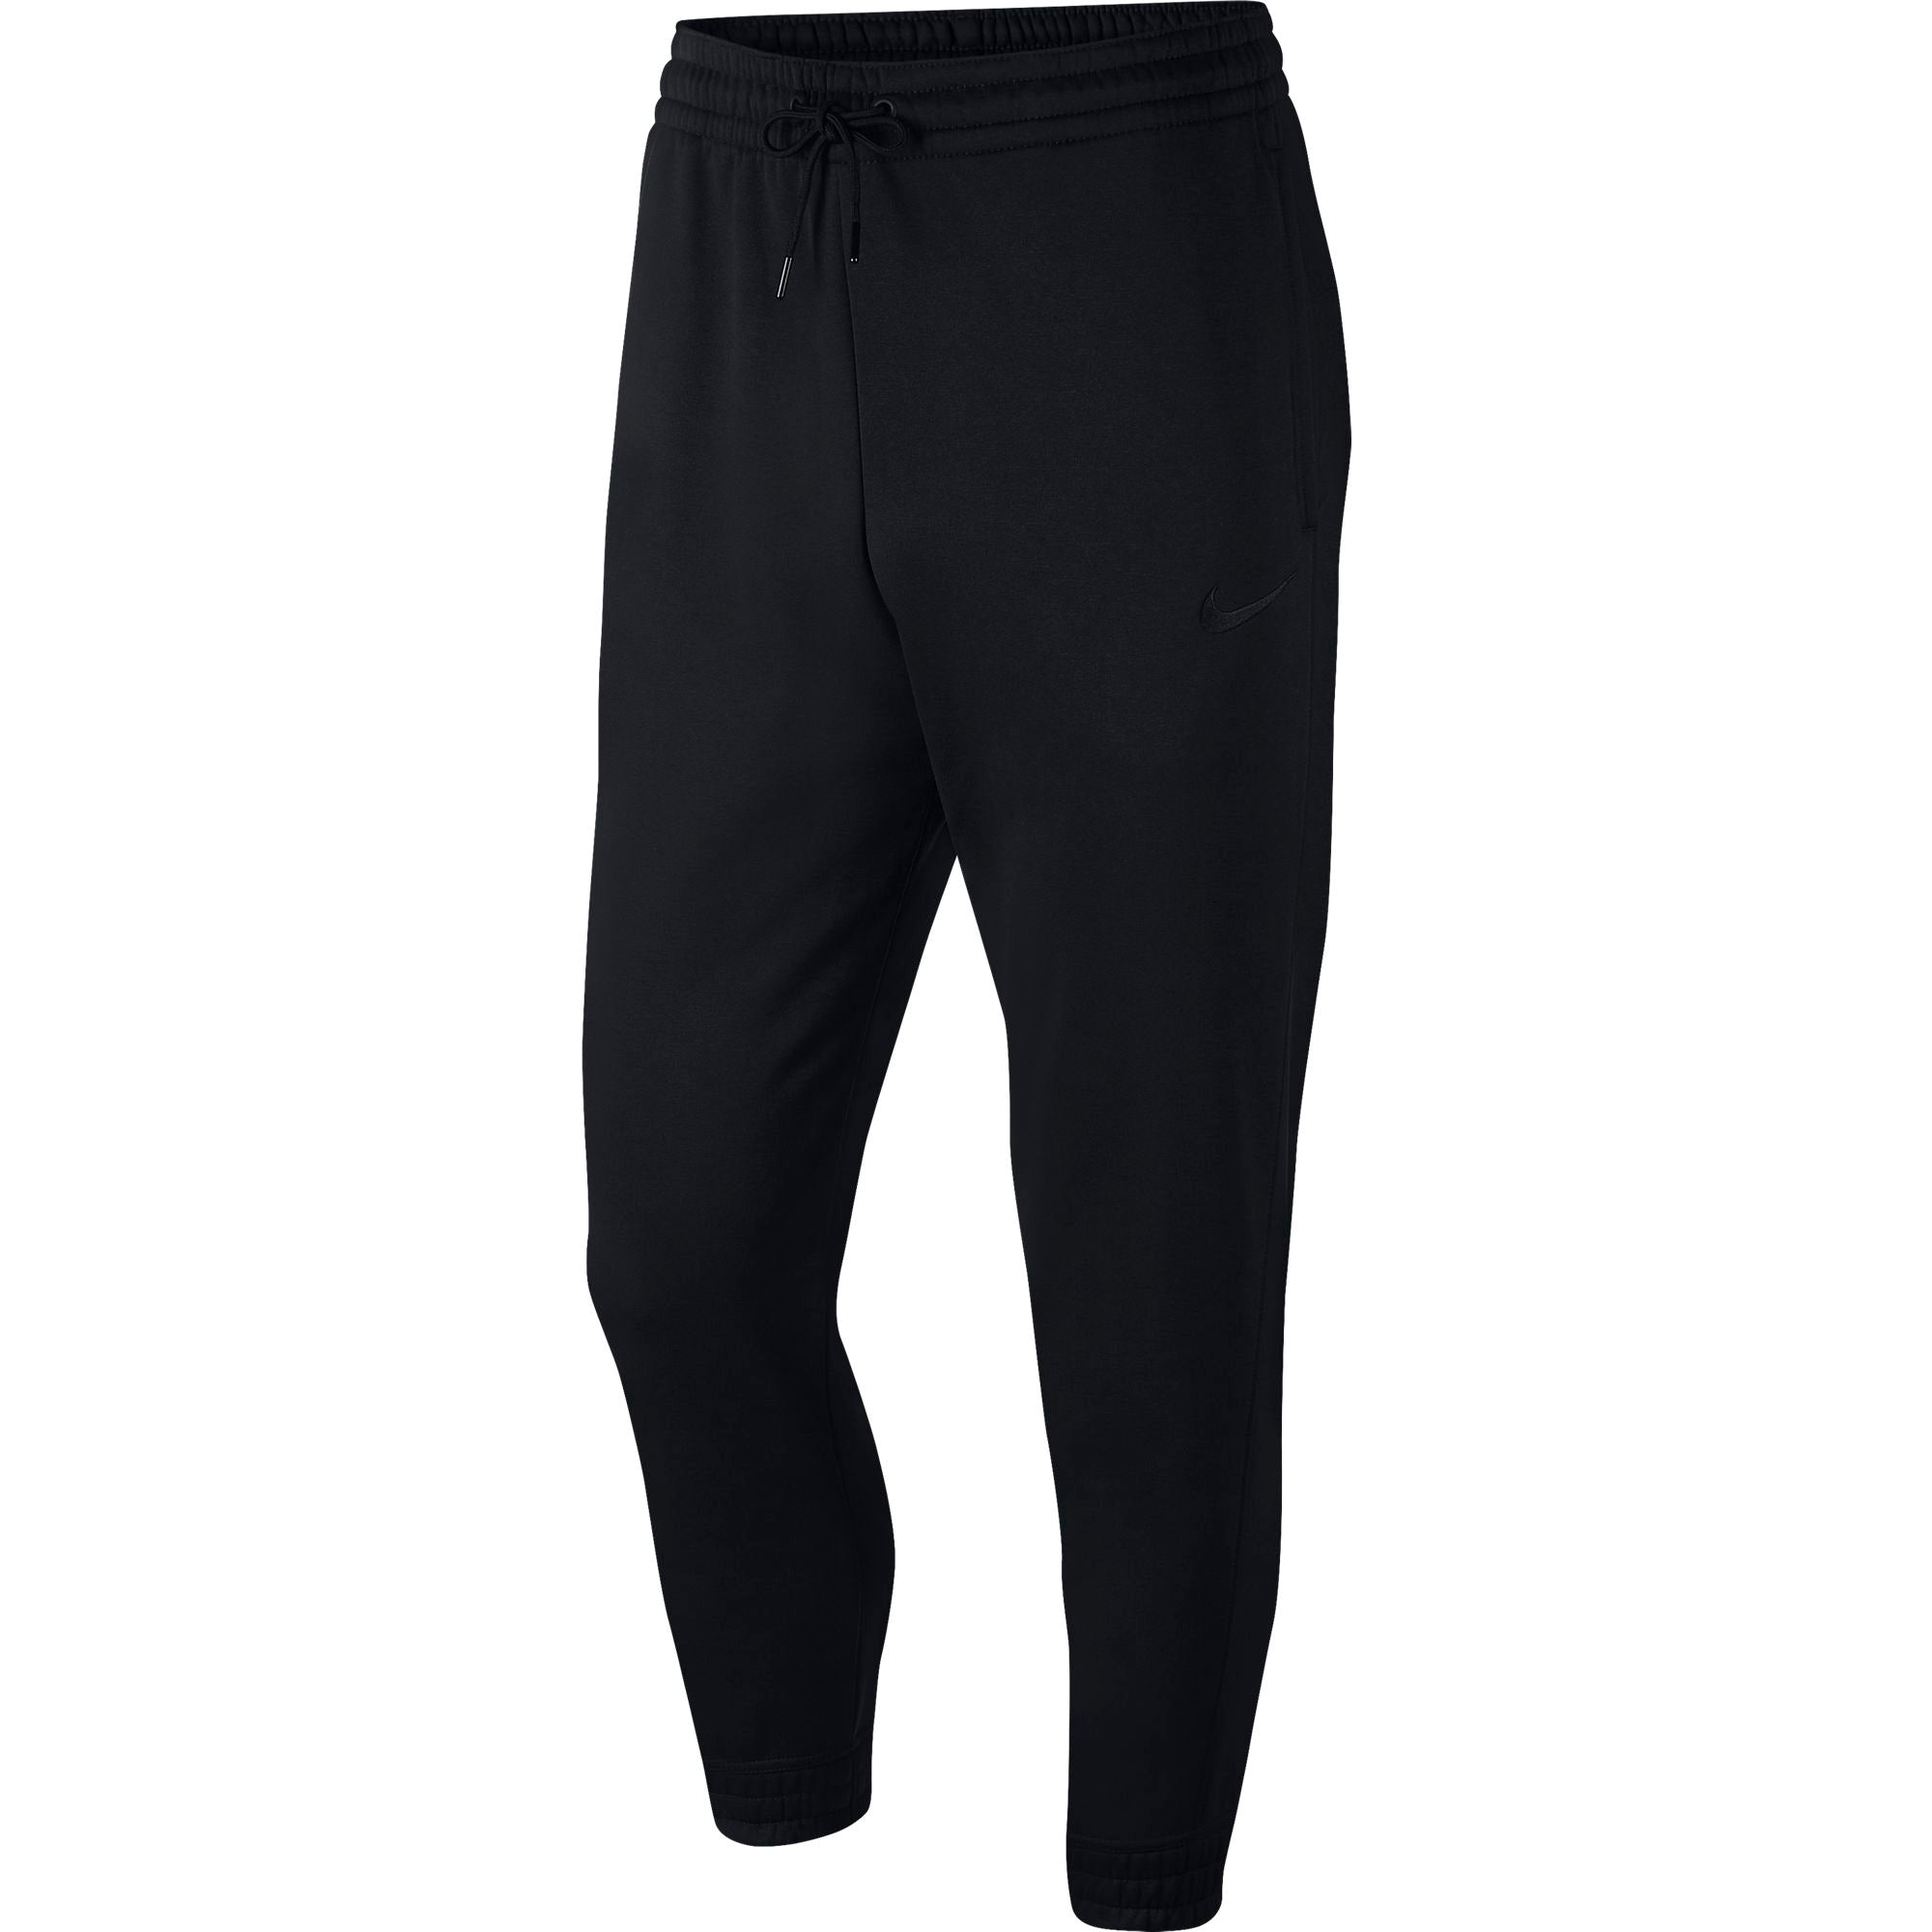 Nike Lebron Performance Fleece Therma Tapered Basketball Pants - NK-927226-010